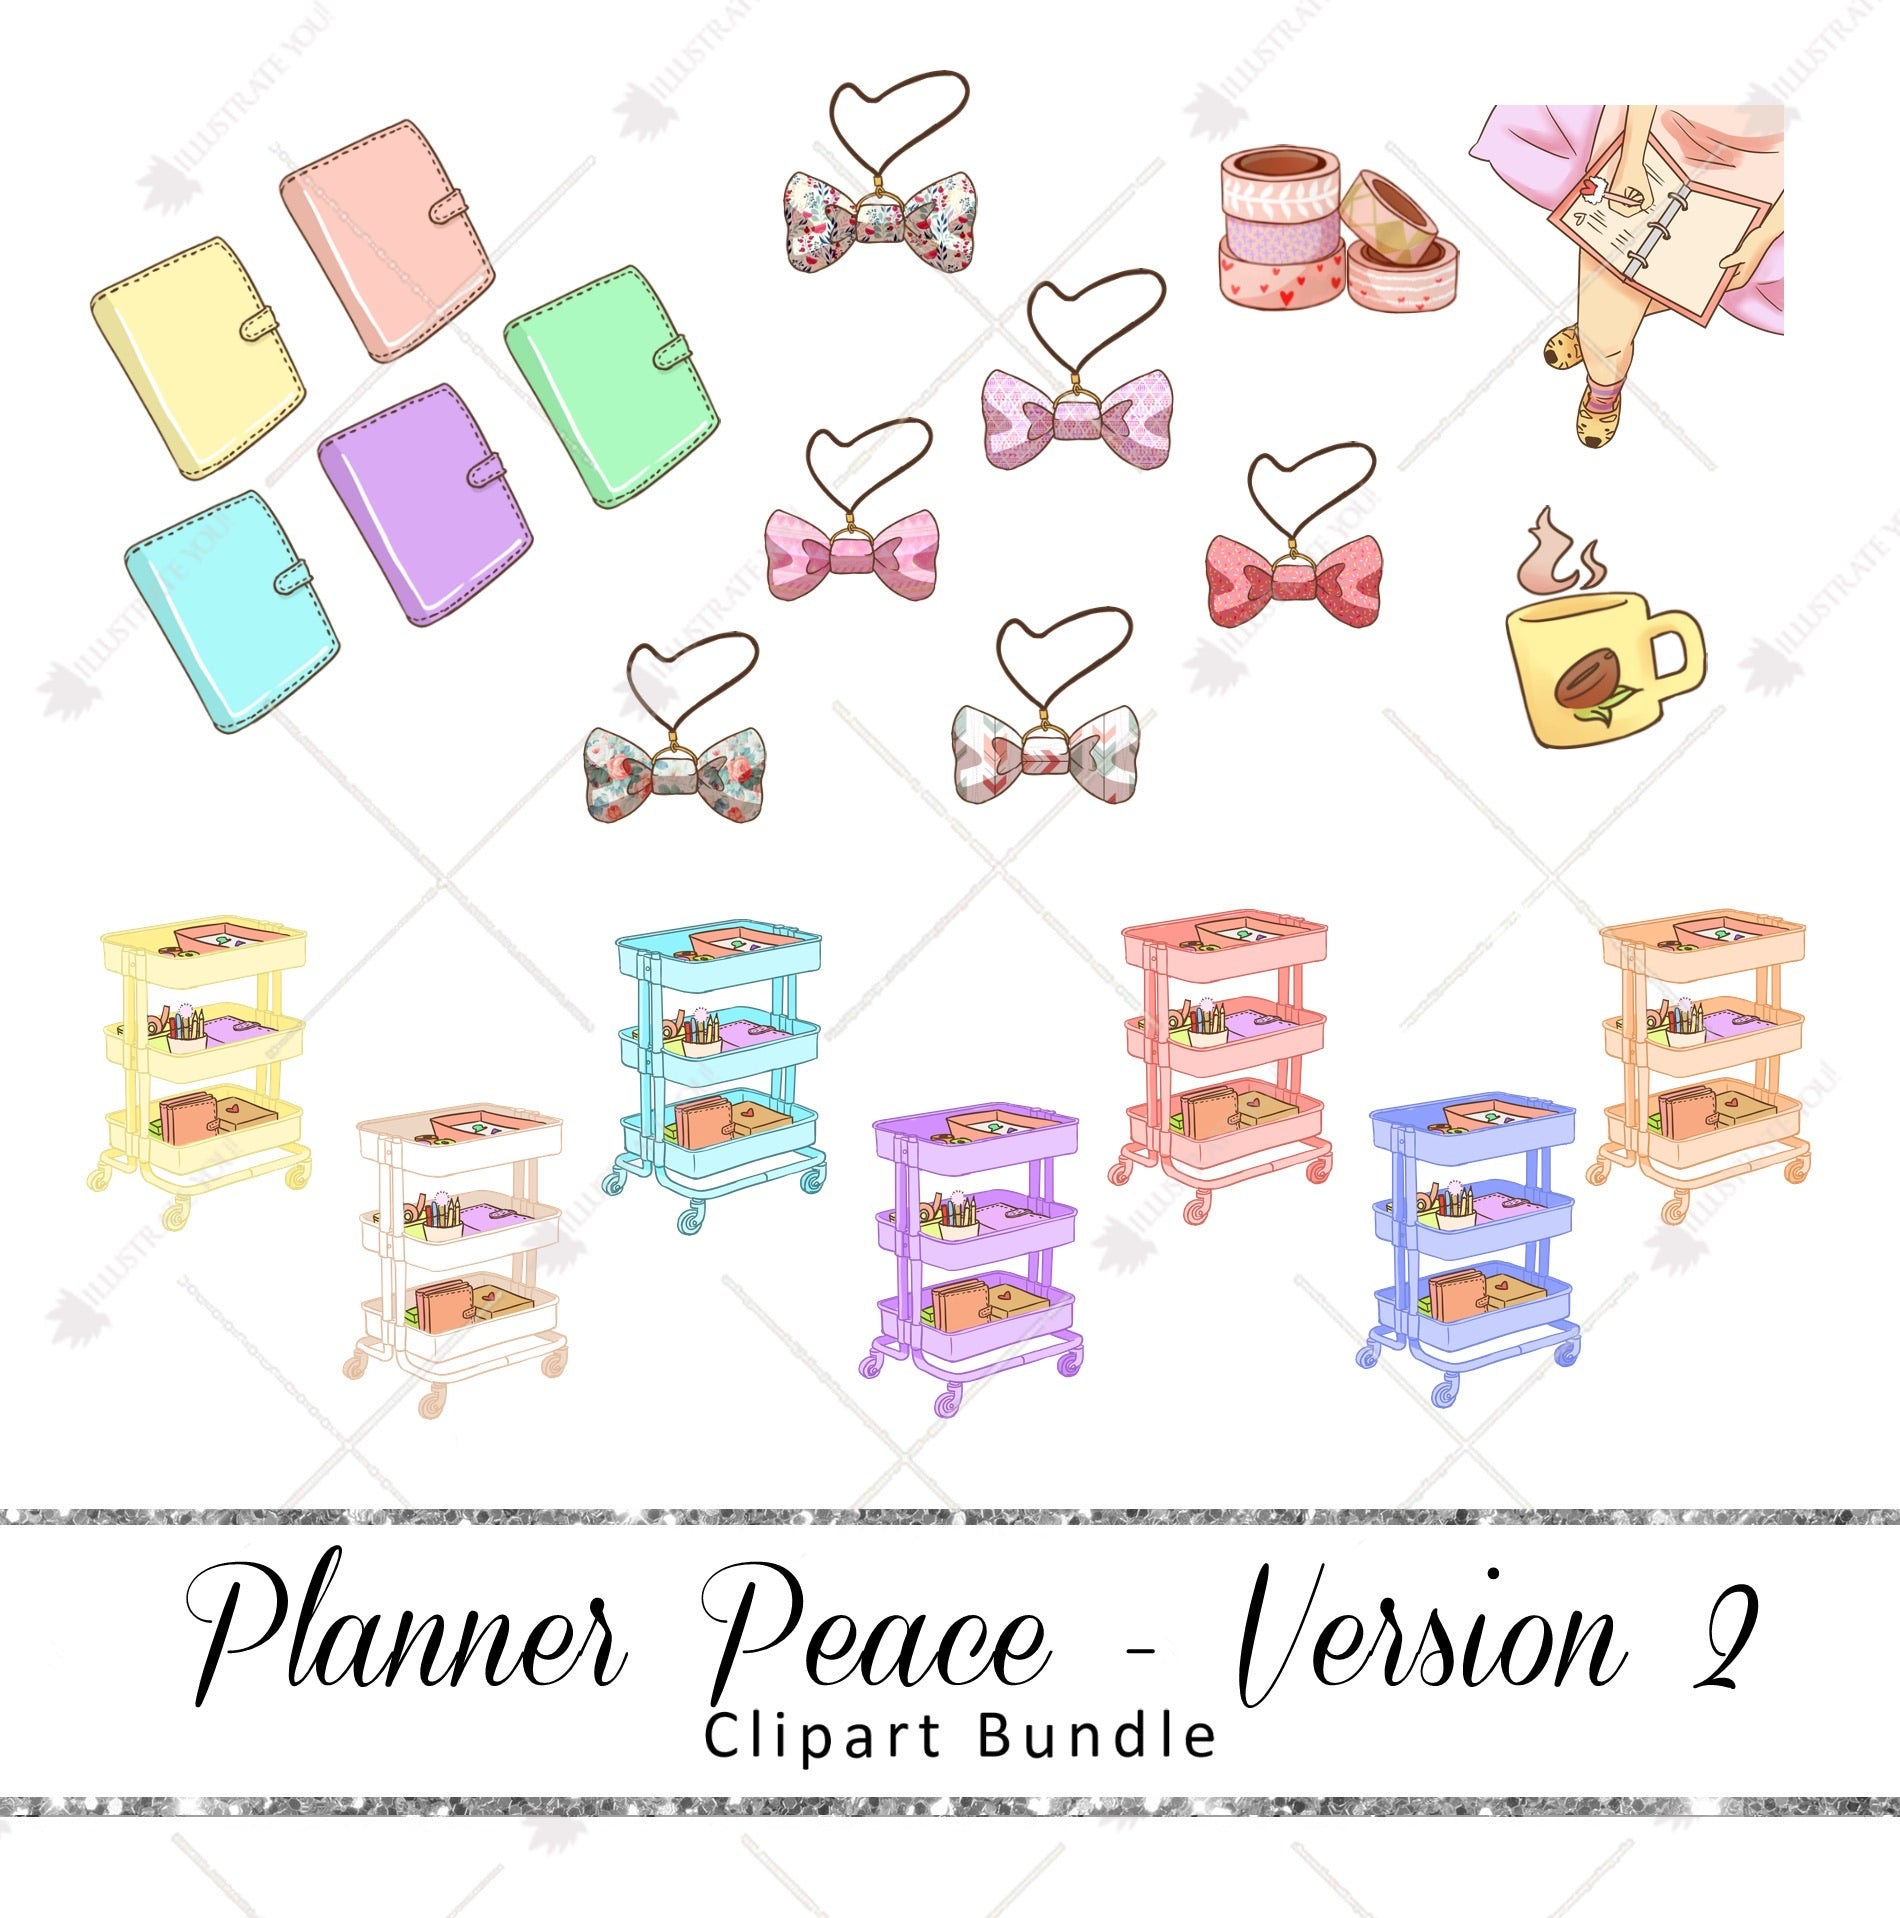 Clipart Bundle - Planner Peace Version 2